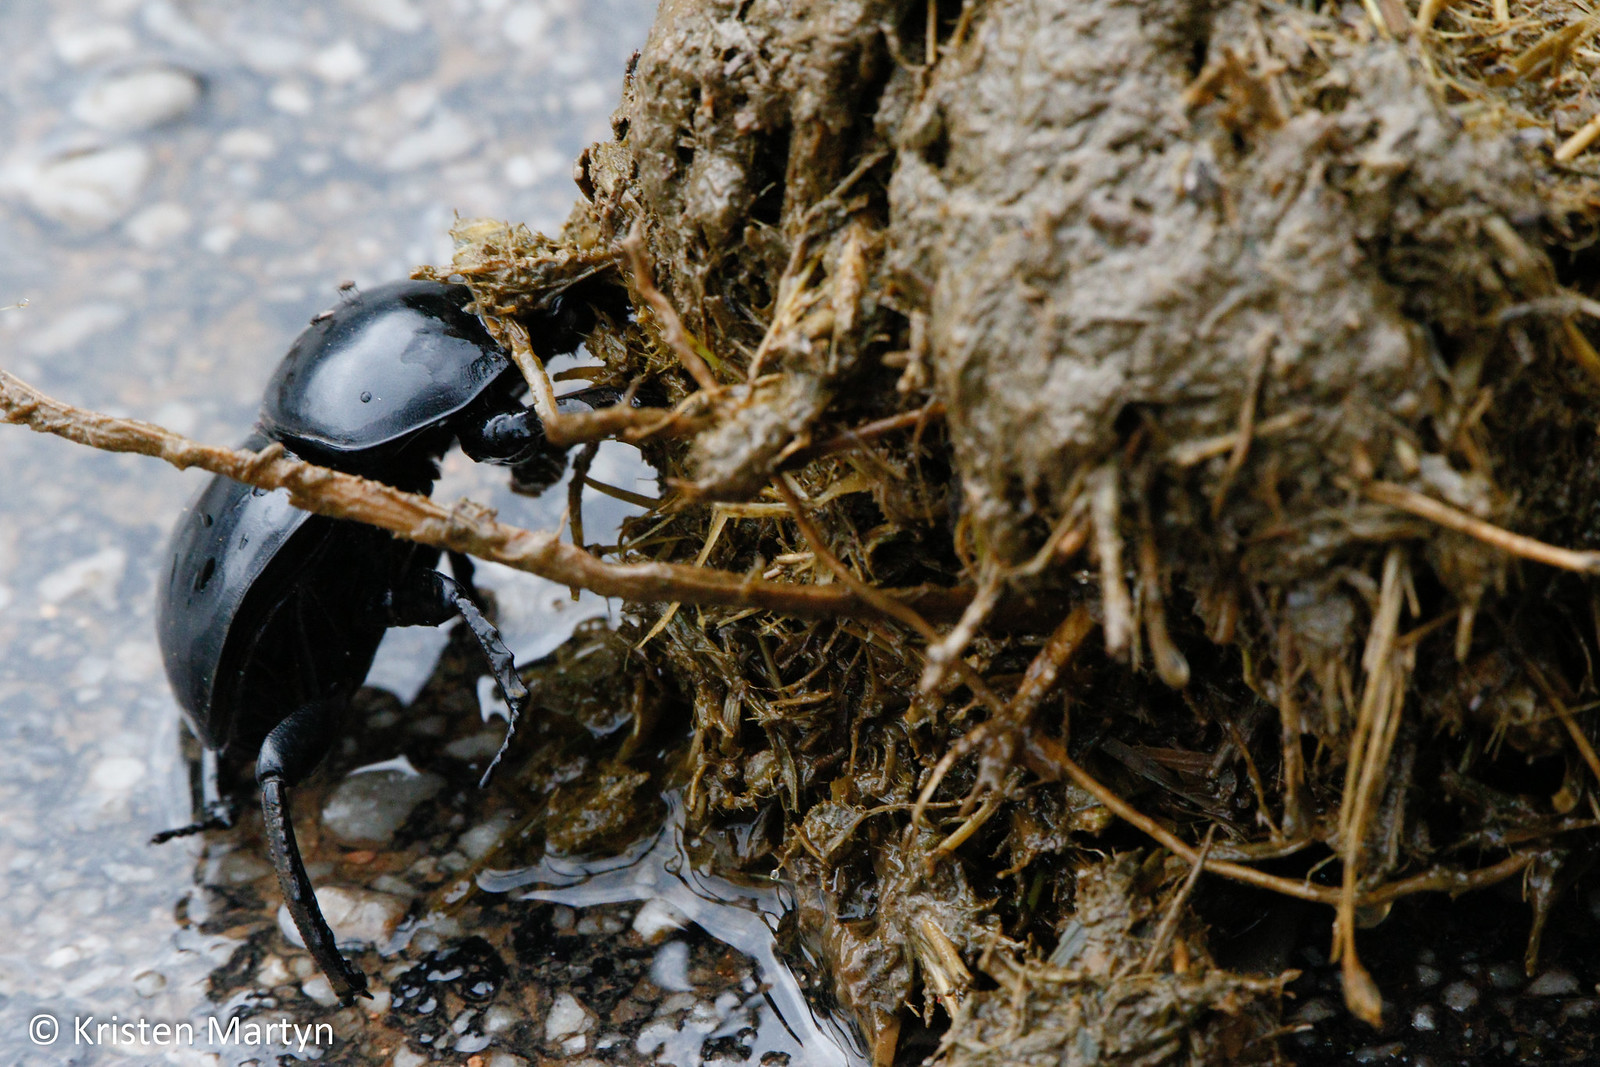 Flightless Dung Beetle (Circellium bacchus)